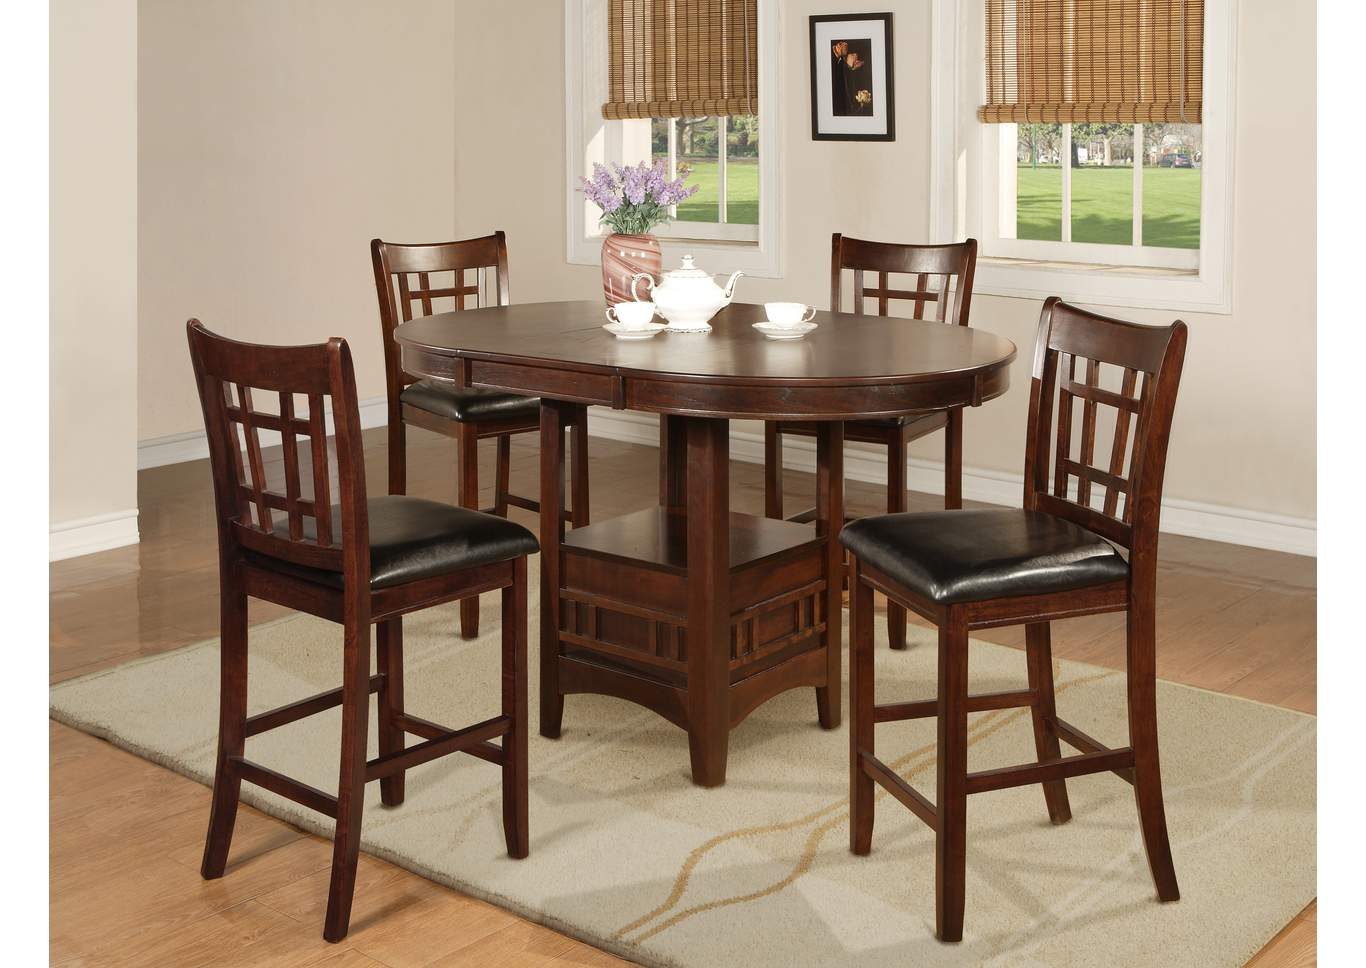 Hartwell Cherry Counter Height Extension Dining Table w/4 Counter Height Chairs,Crown Mark